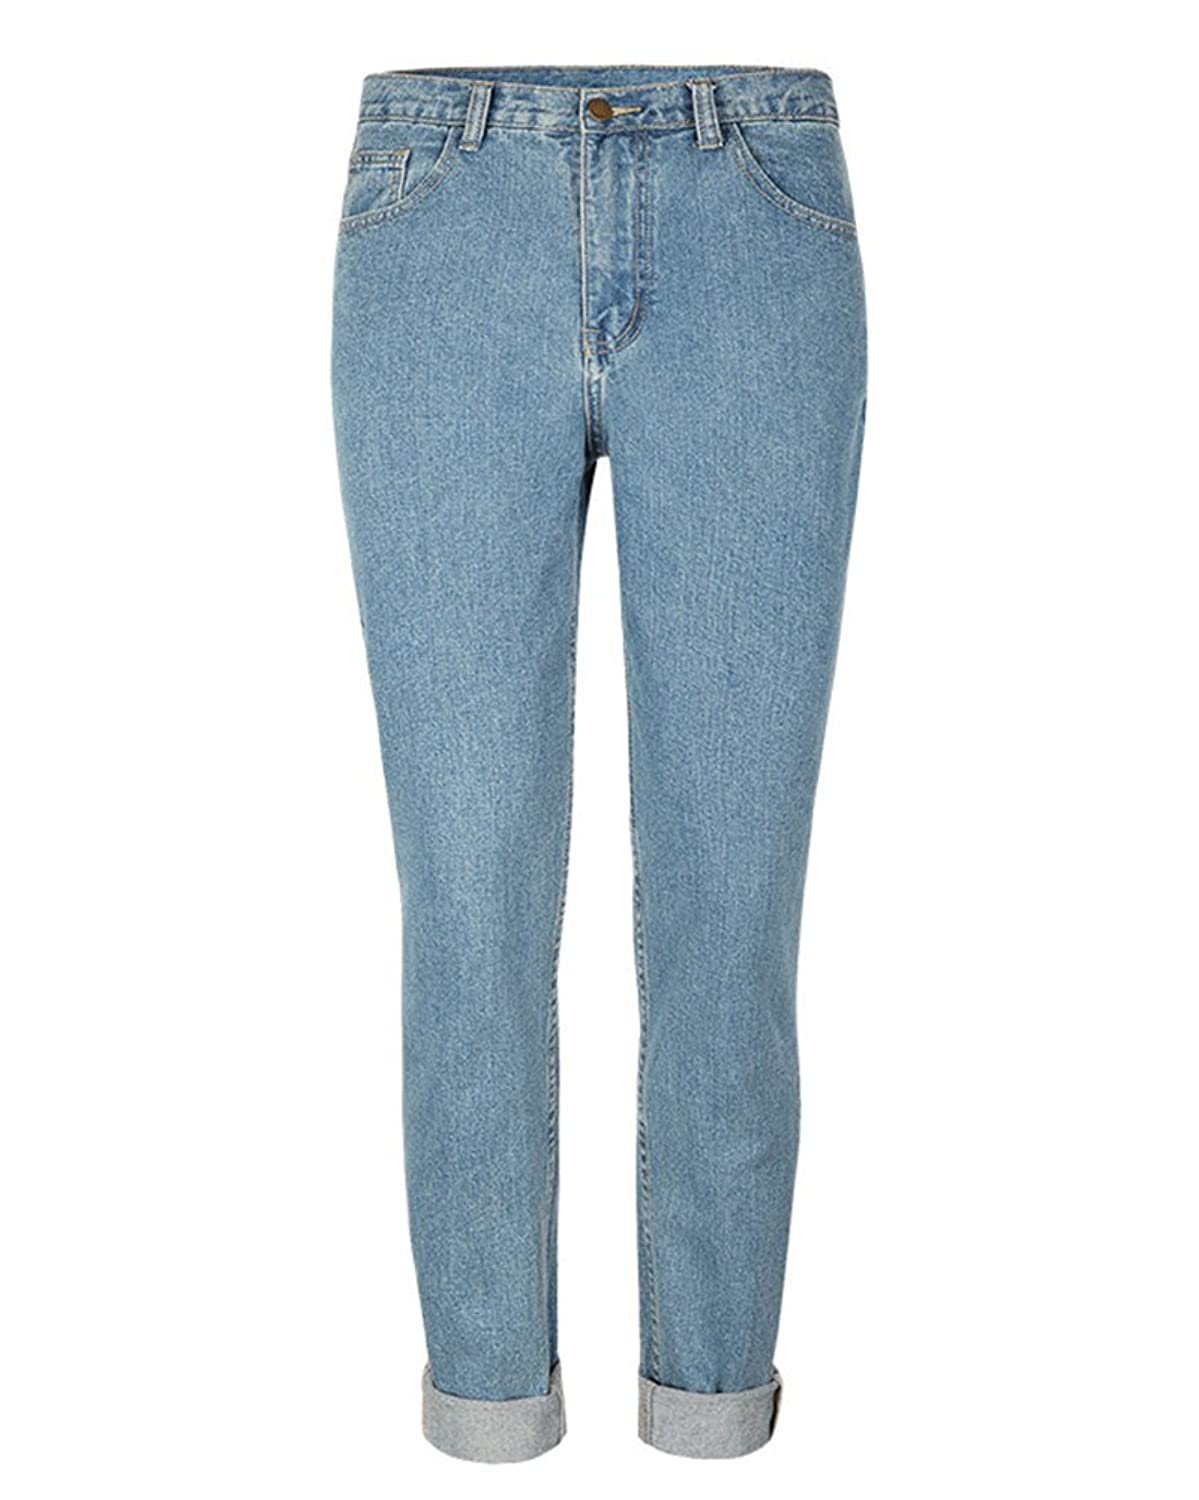 Ladies Vintage Boyfriend Demim Blue Baggy Frayed Turn Up Jeans:  Amazon.co.uk: Clothing